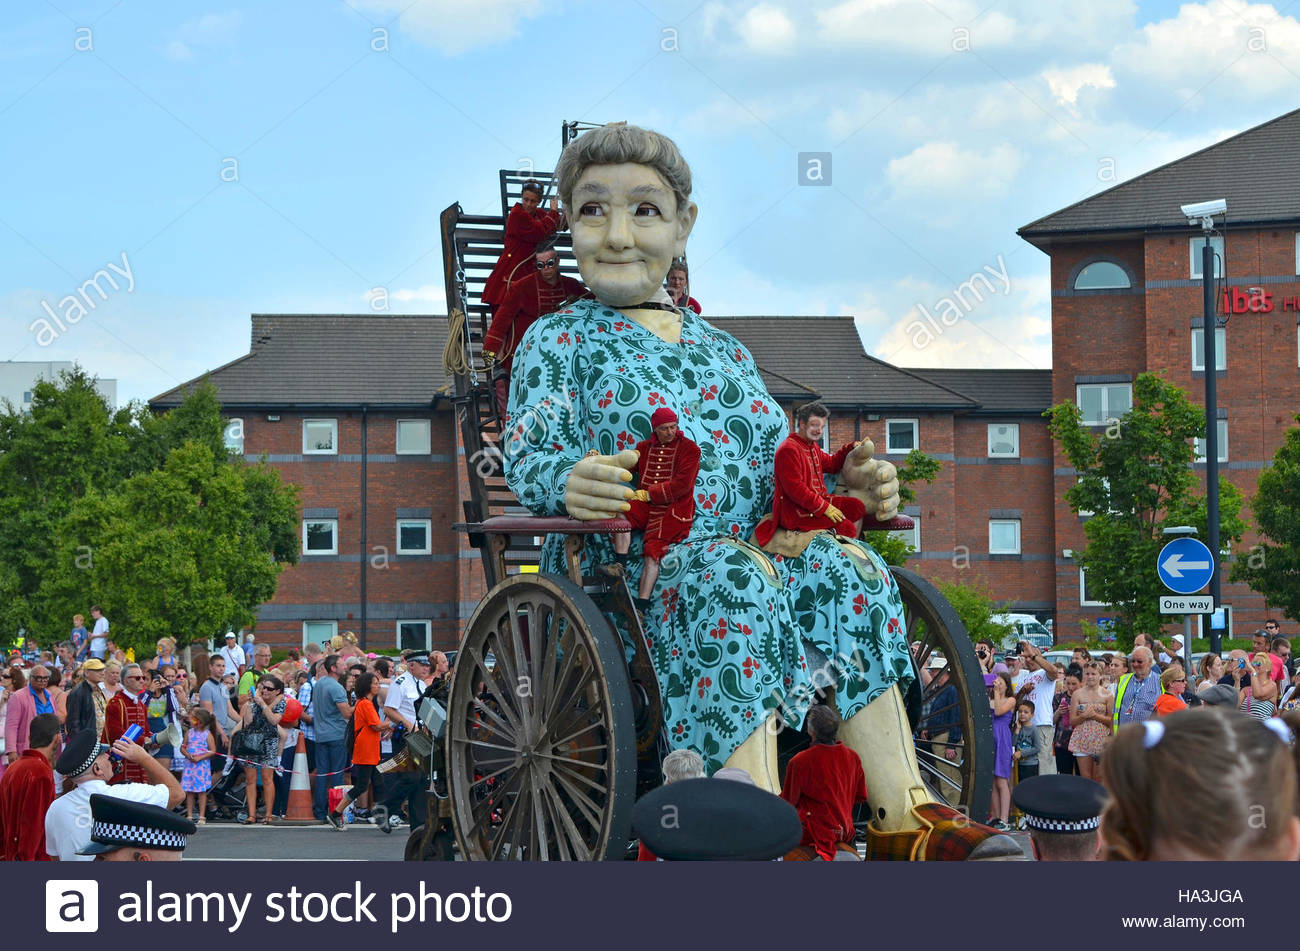 ' Grandma Giant ' one of the French puppeteers ' Royal De Luxe ' giant marionettes, is wheeled around - Stock Image